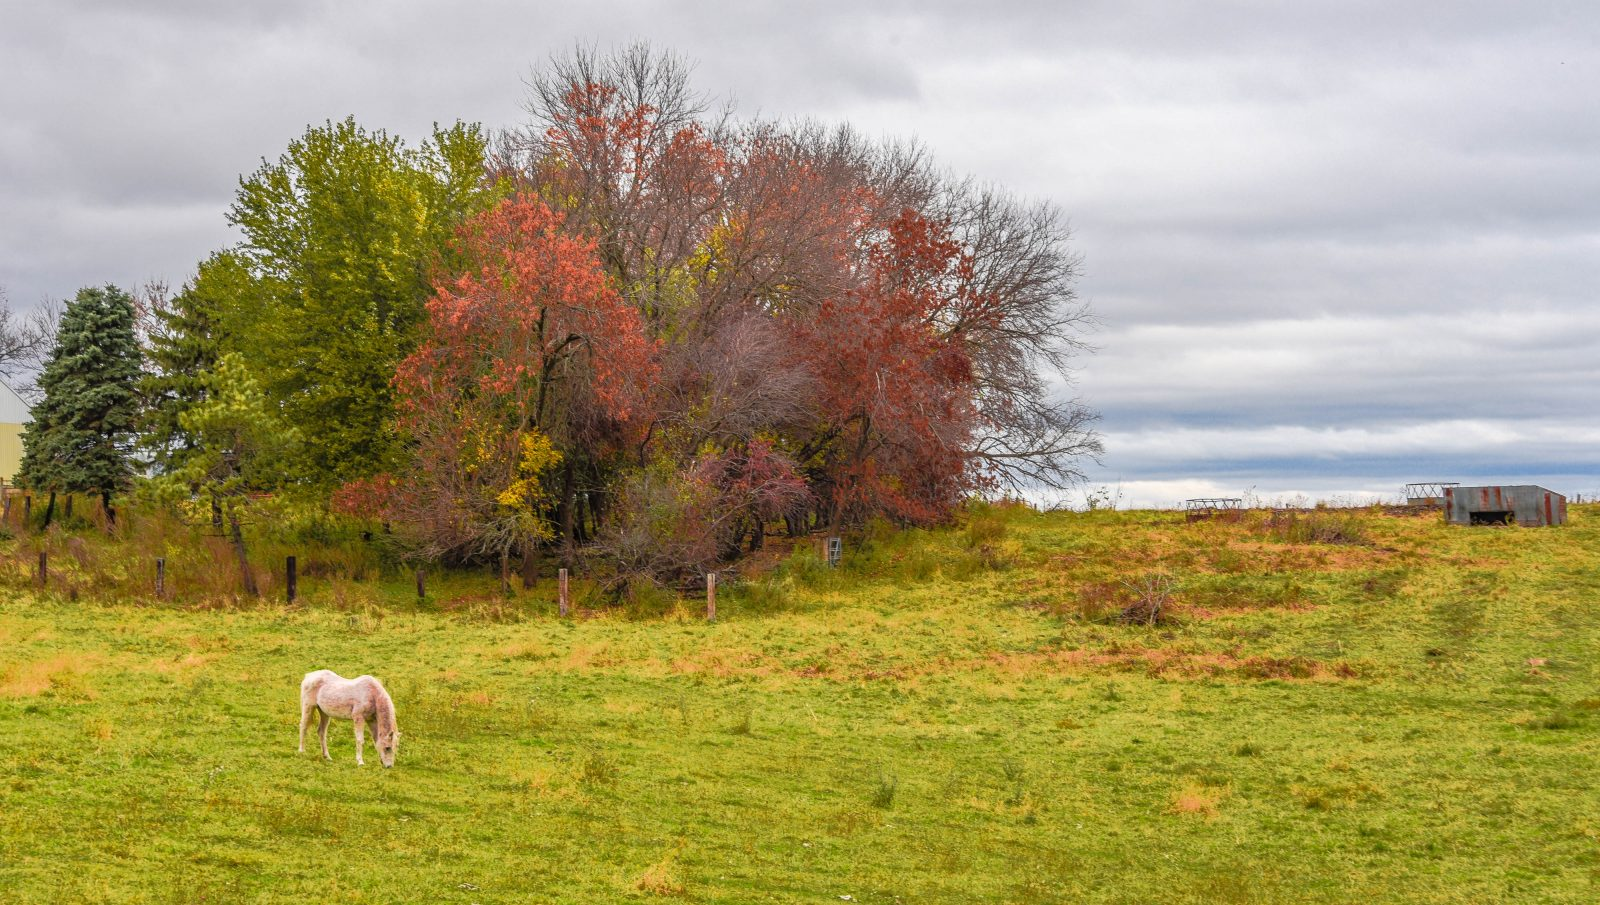 Pasture in the Fall